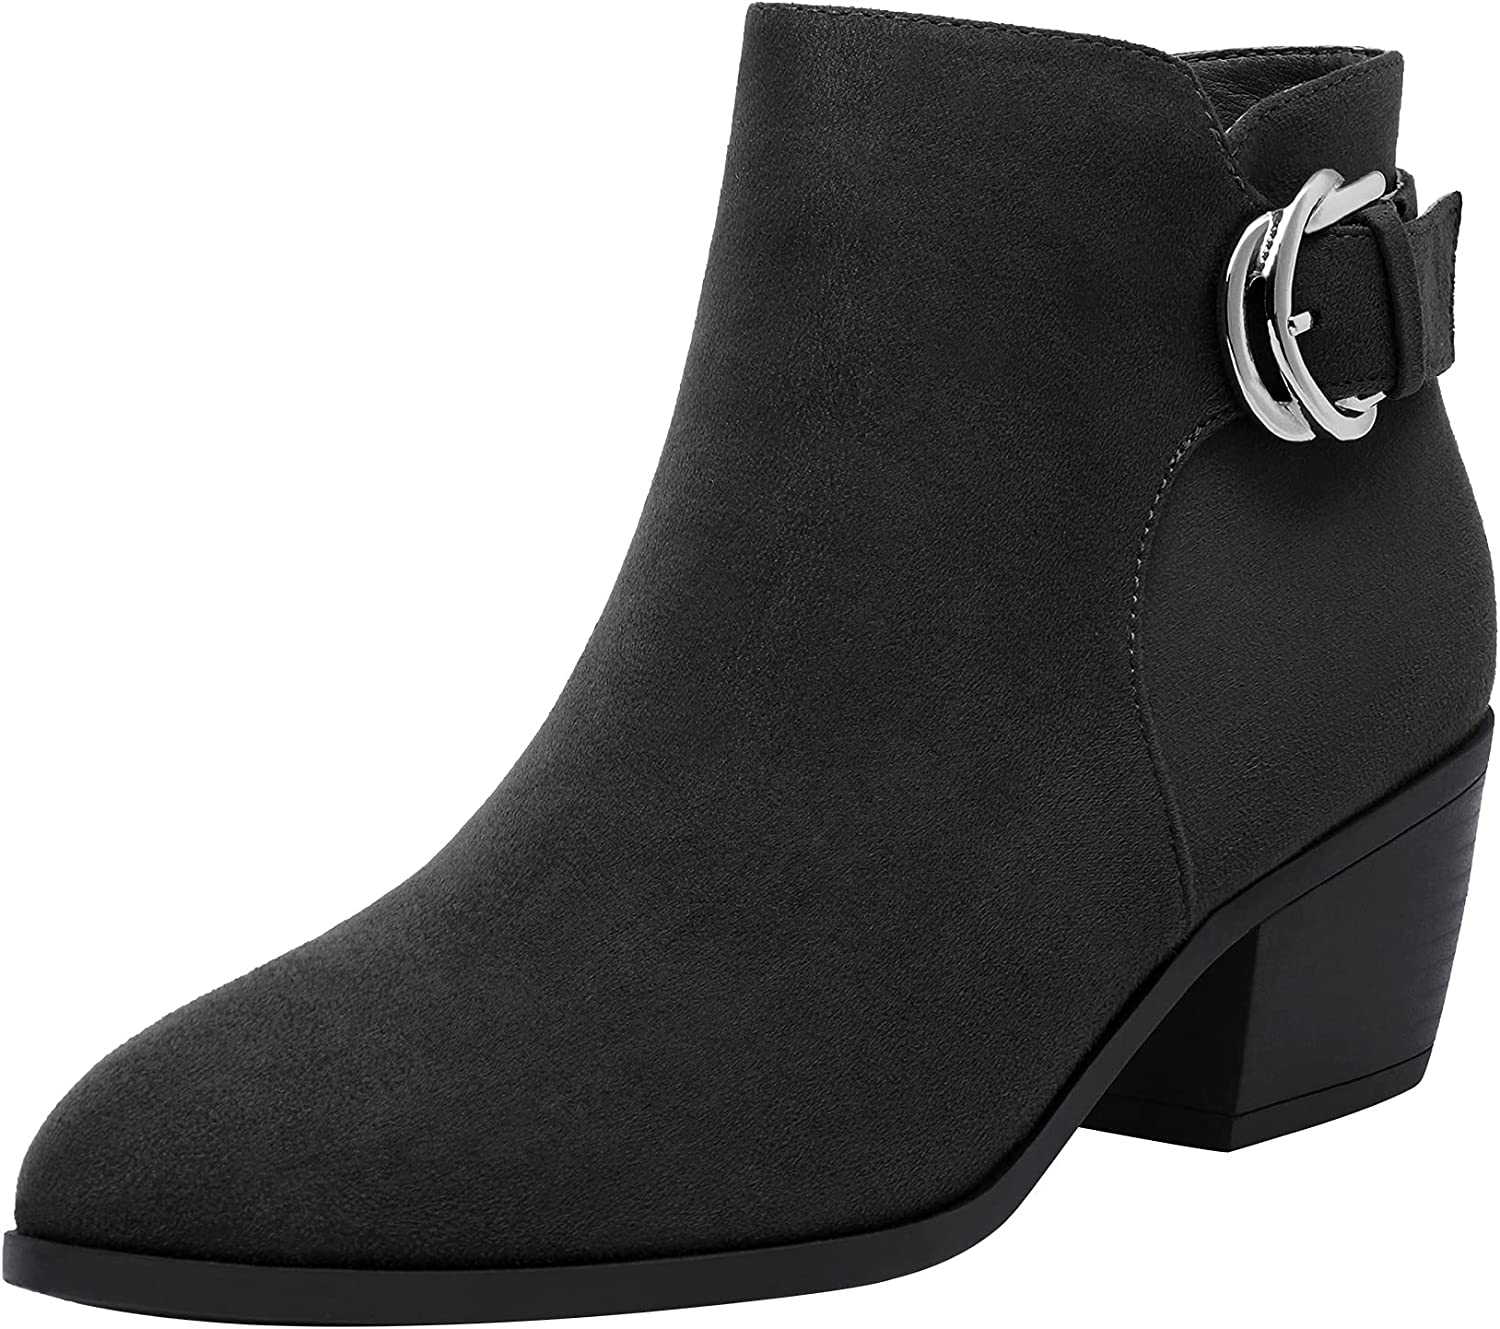 DREAM PAIRS Women's Ankle Boots Shoes